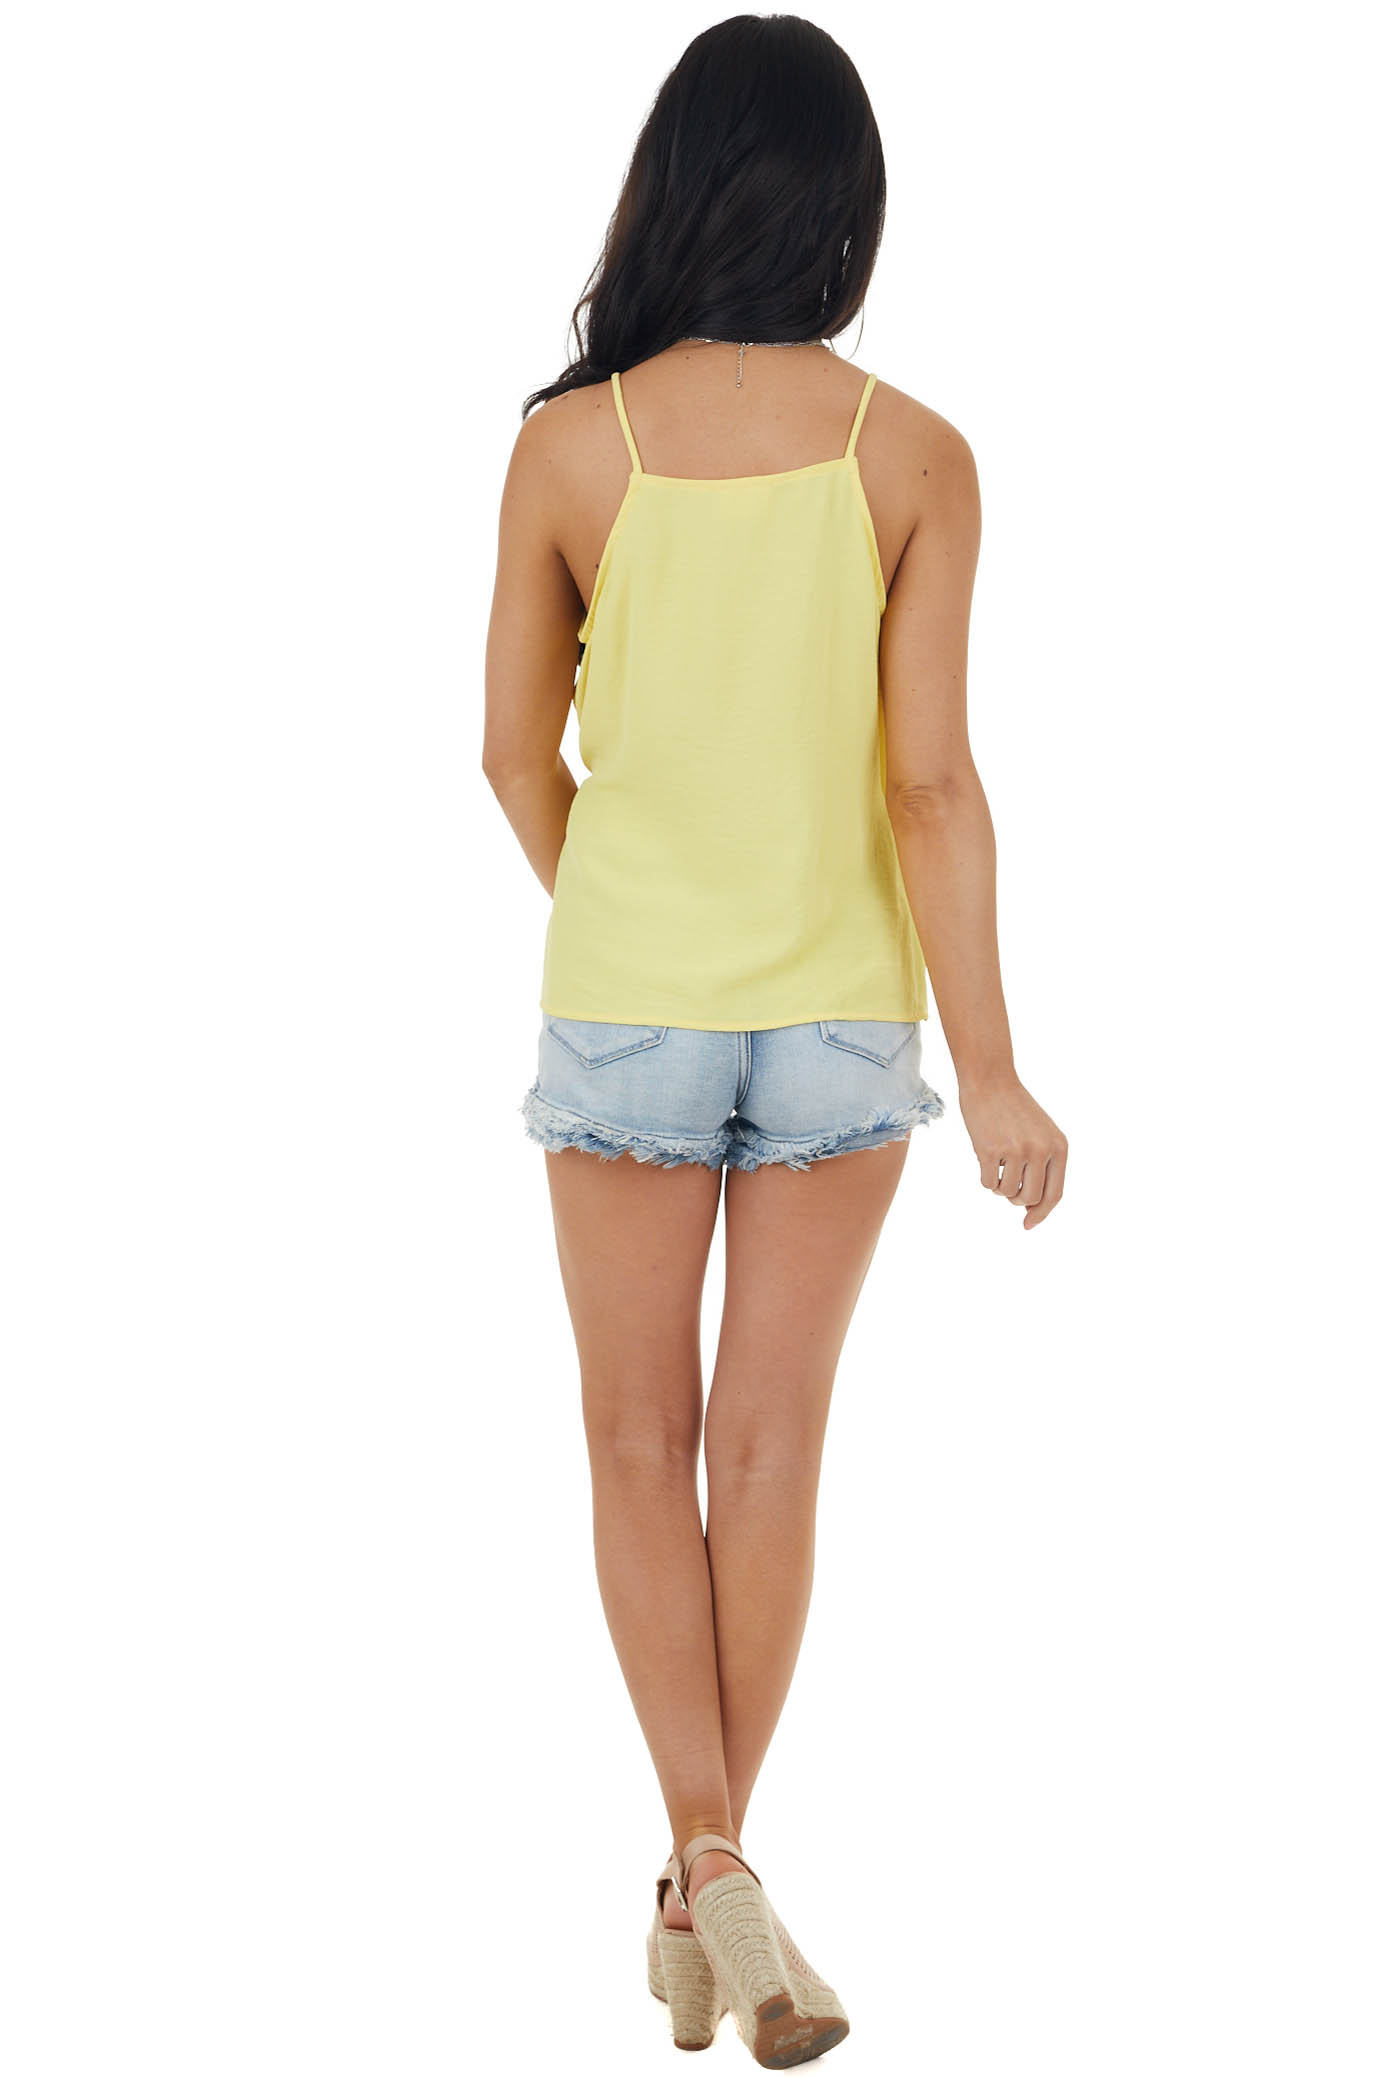 Soft Yellow Sleeveless Woven Surplice Top with Tie Details